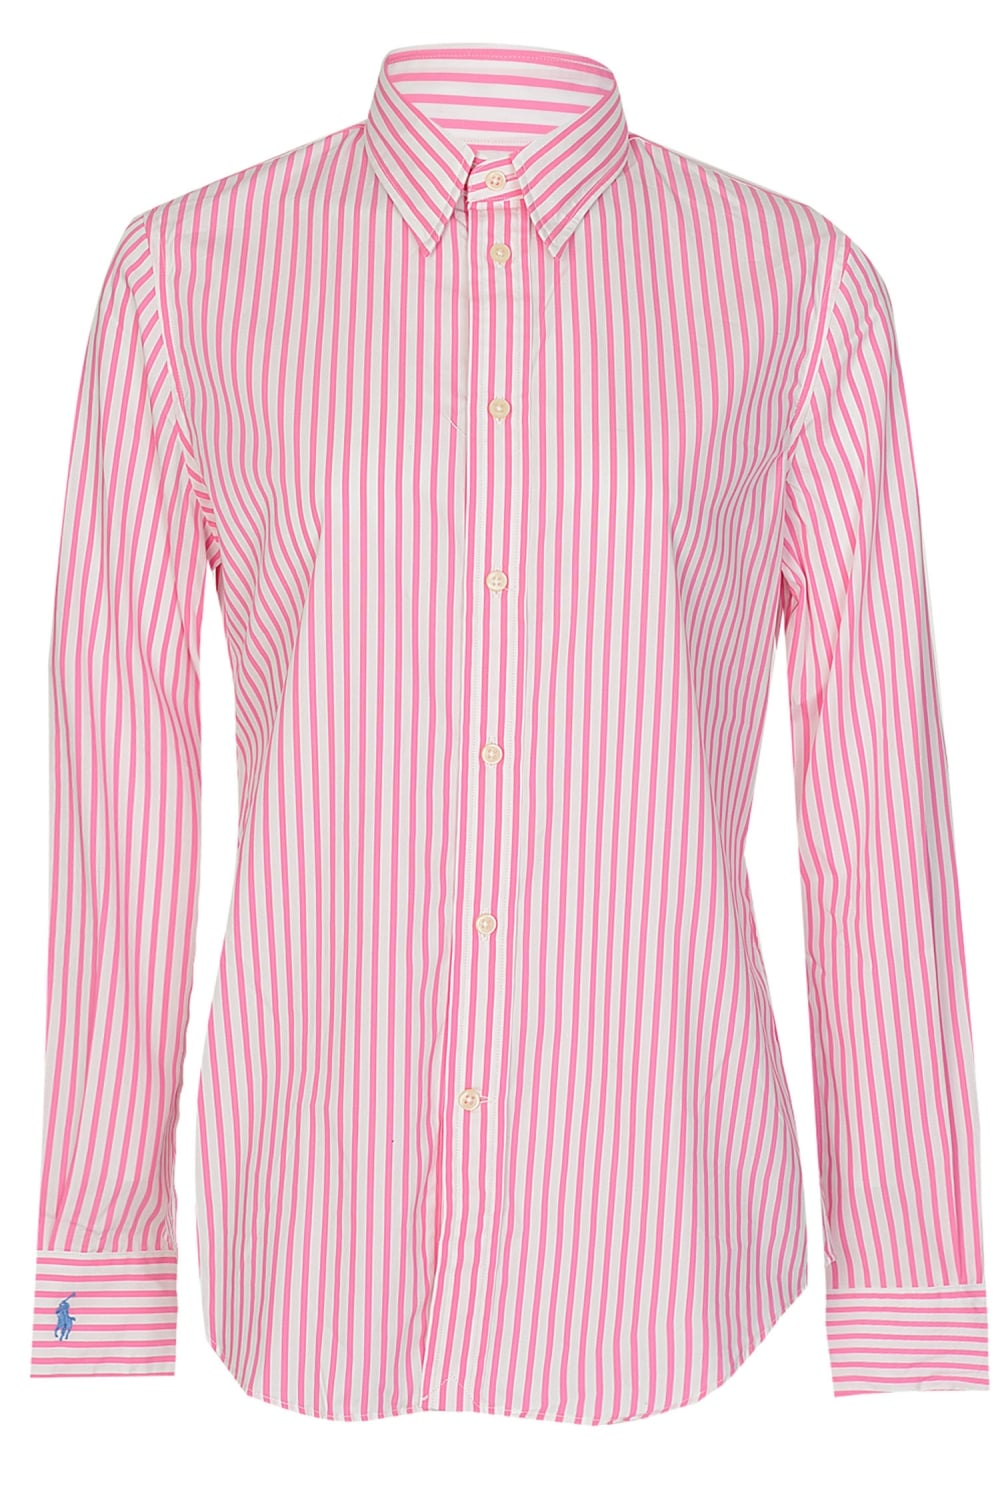 adidas Originals Sweater Pullover Damen rosa CD6903